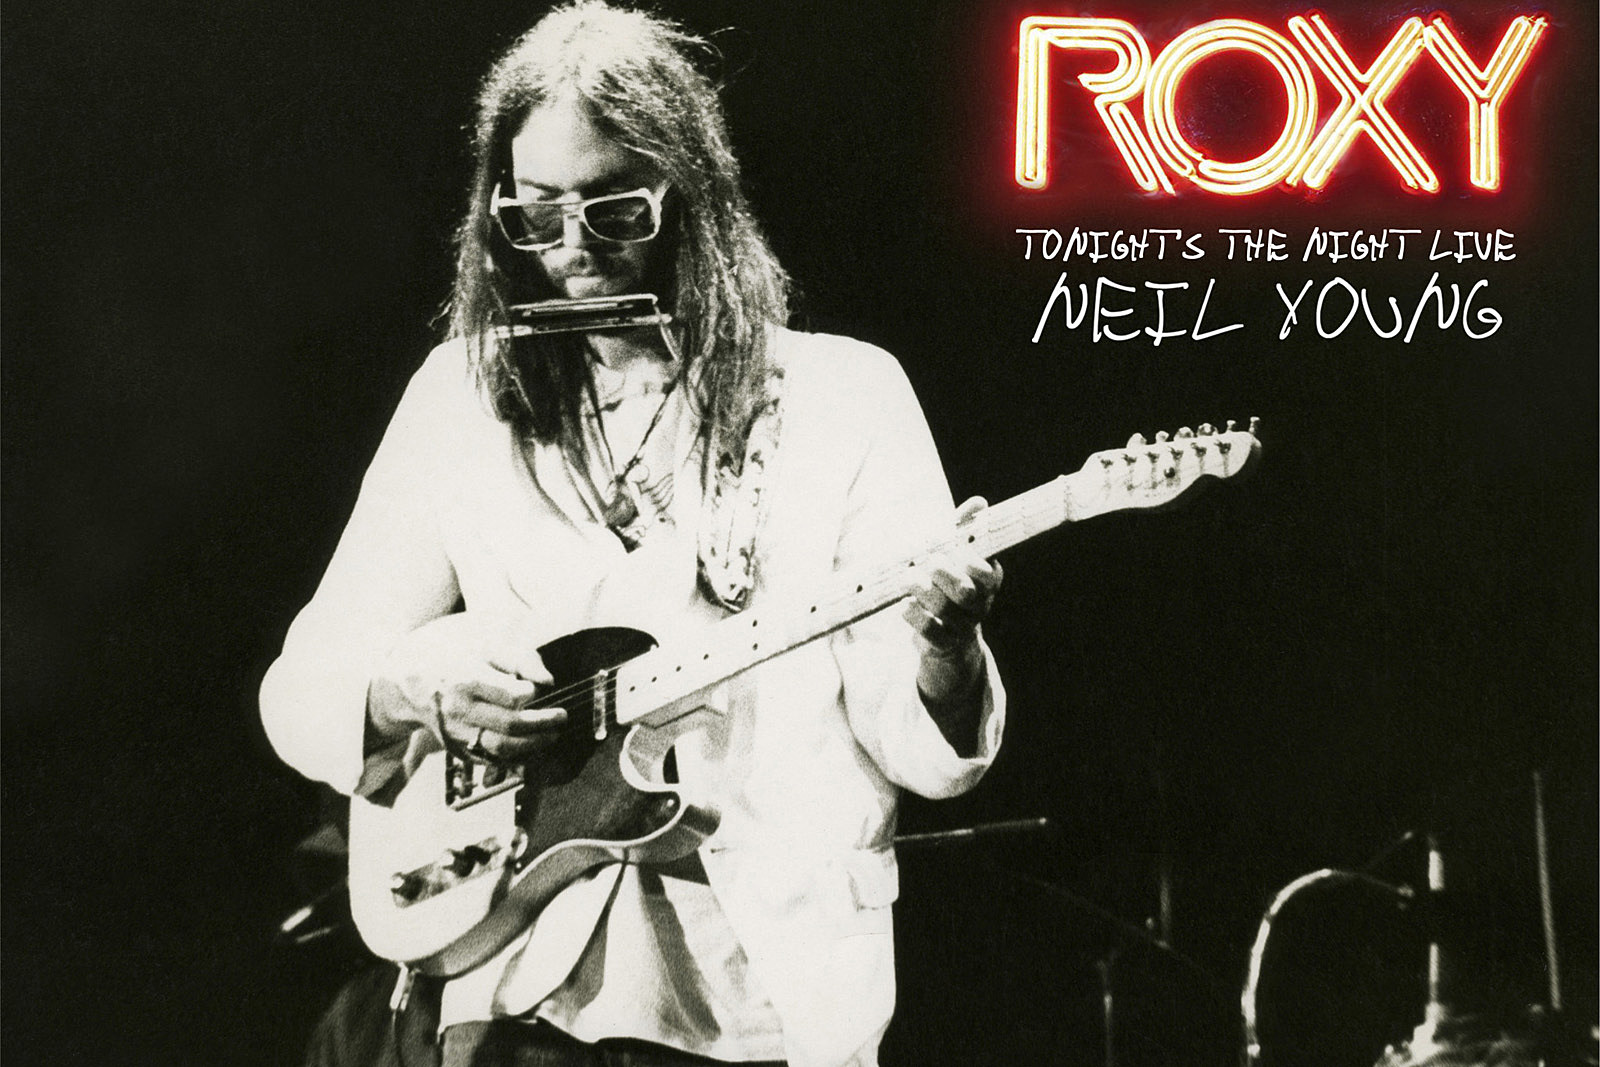 Neil Young: Roxy